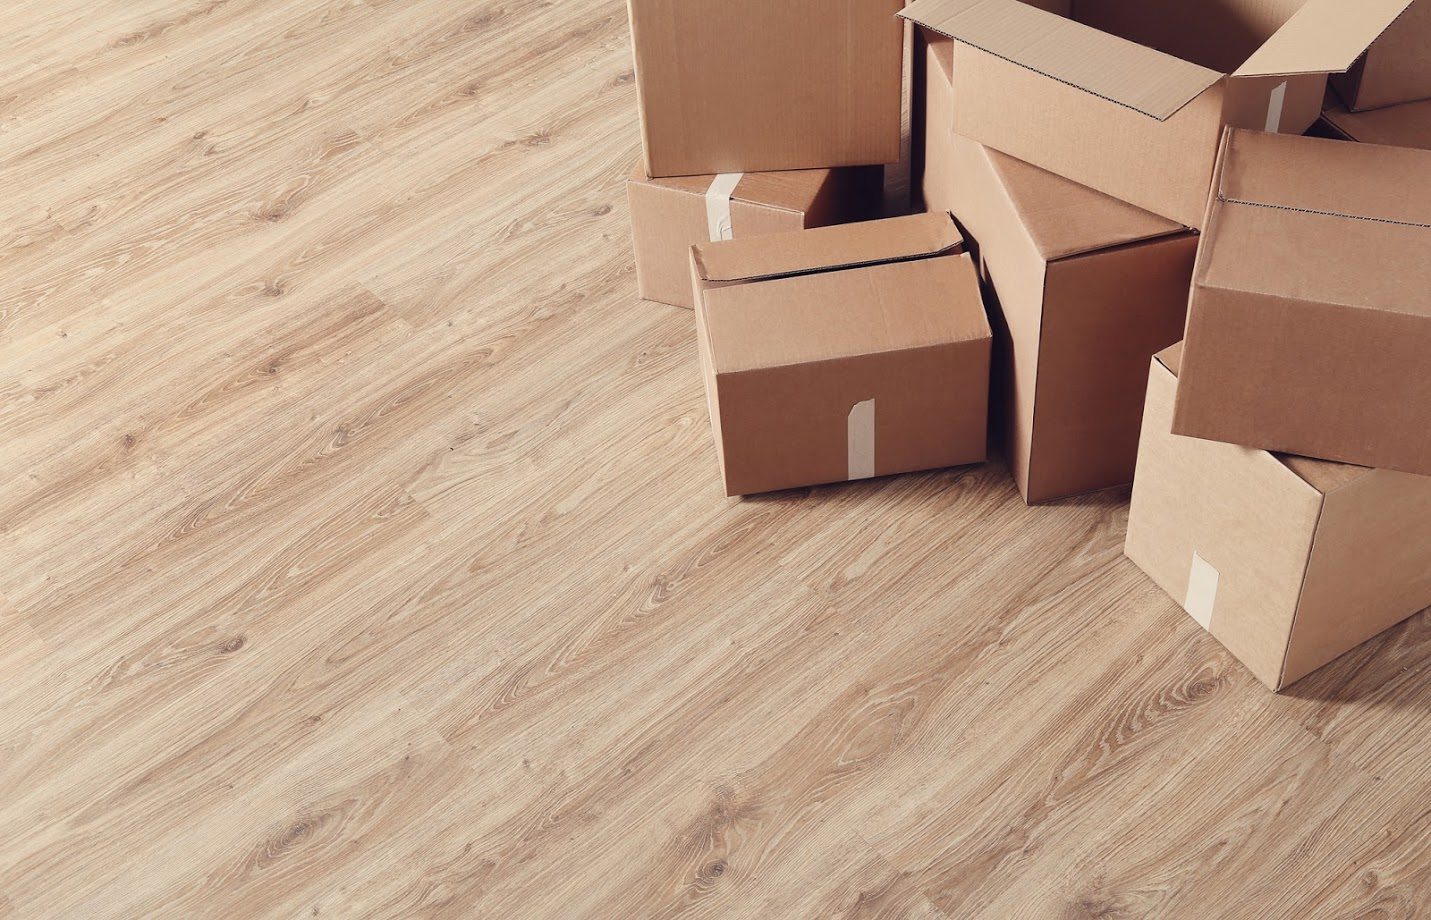 The Top Reasons to Choose Cardboard Storage Boxes